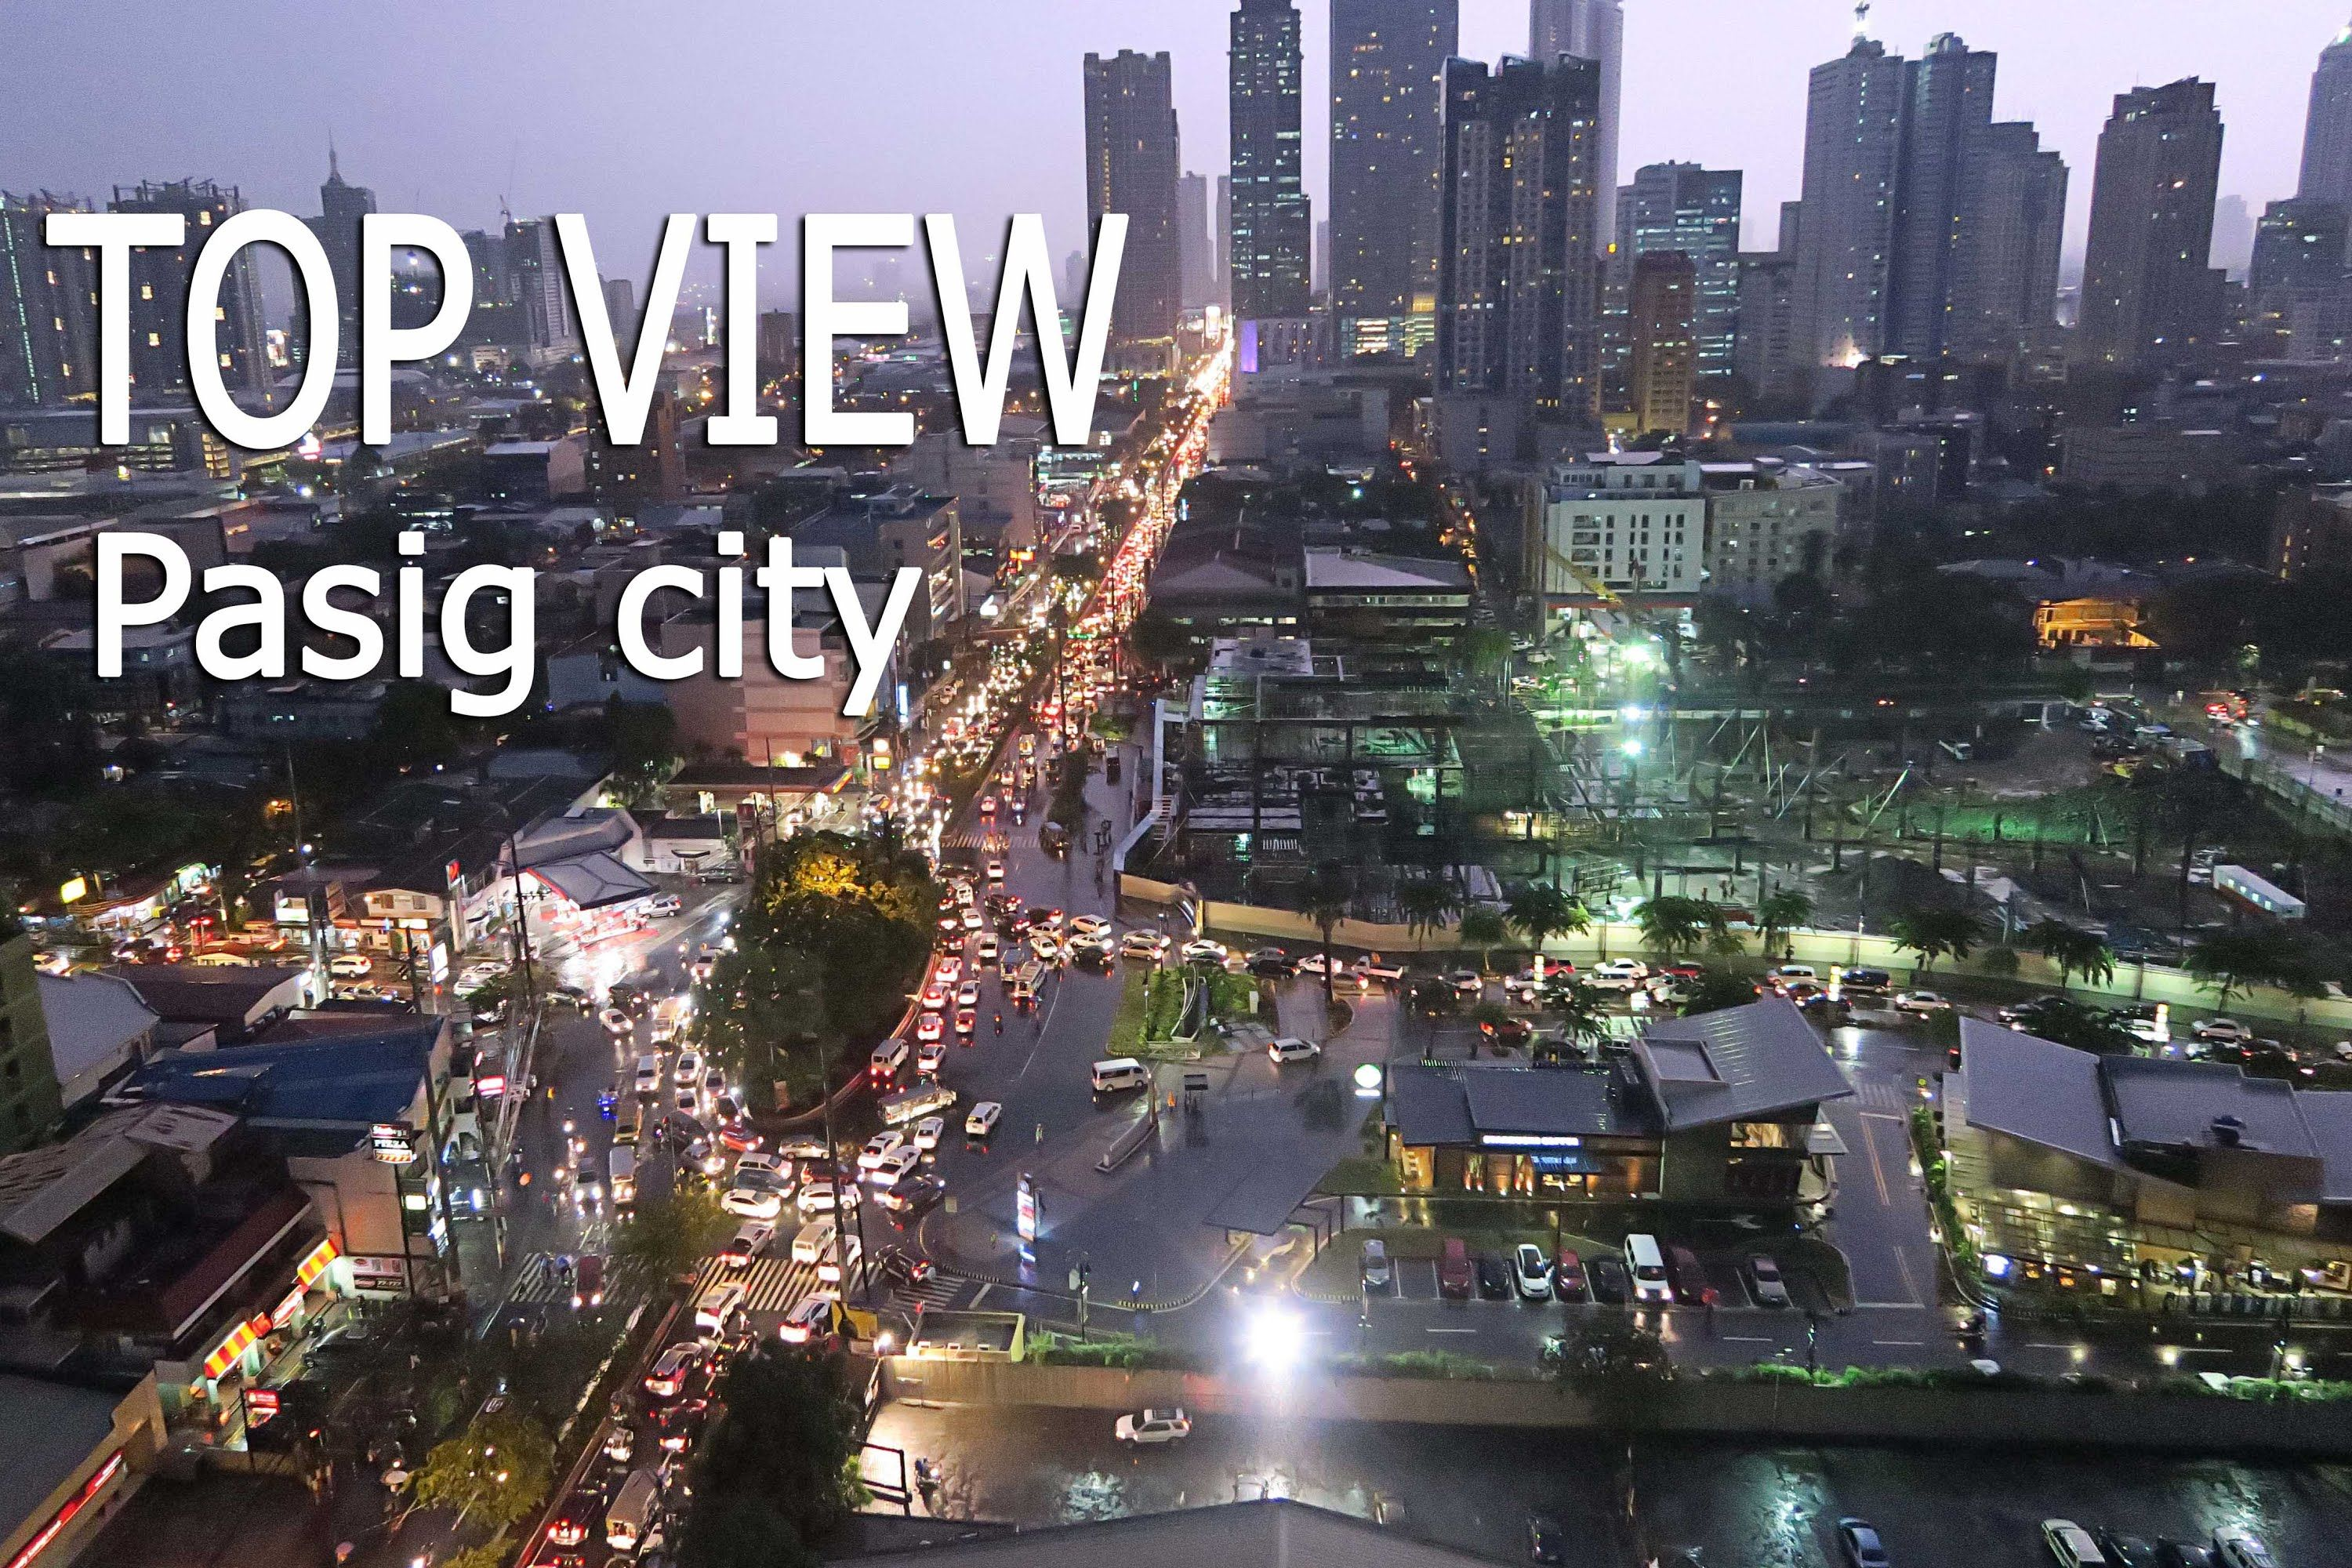 Top View of Pasig City | Philippines - YouTube